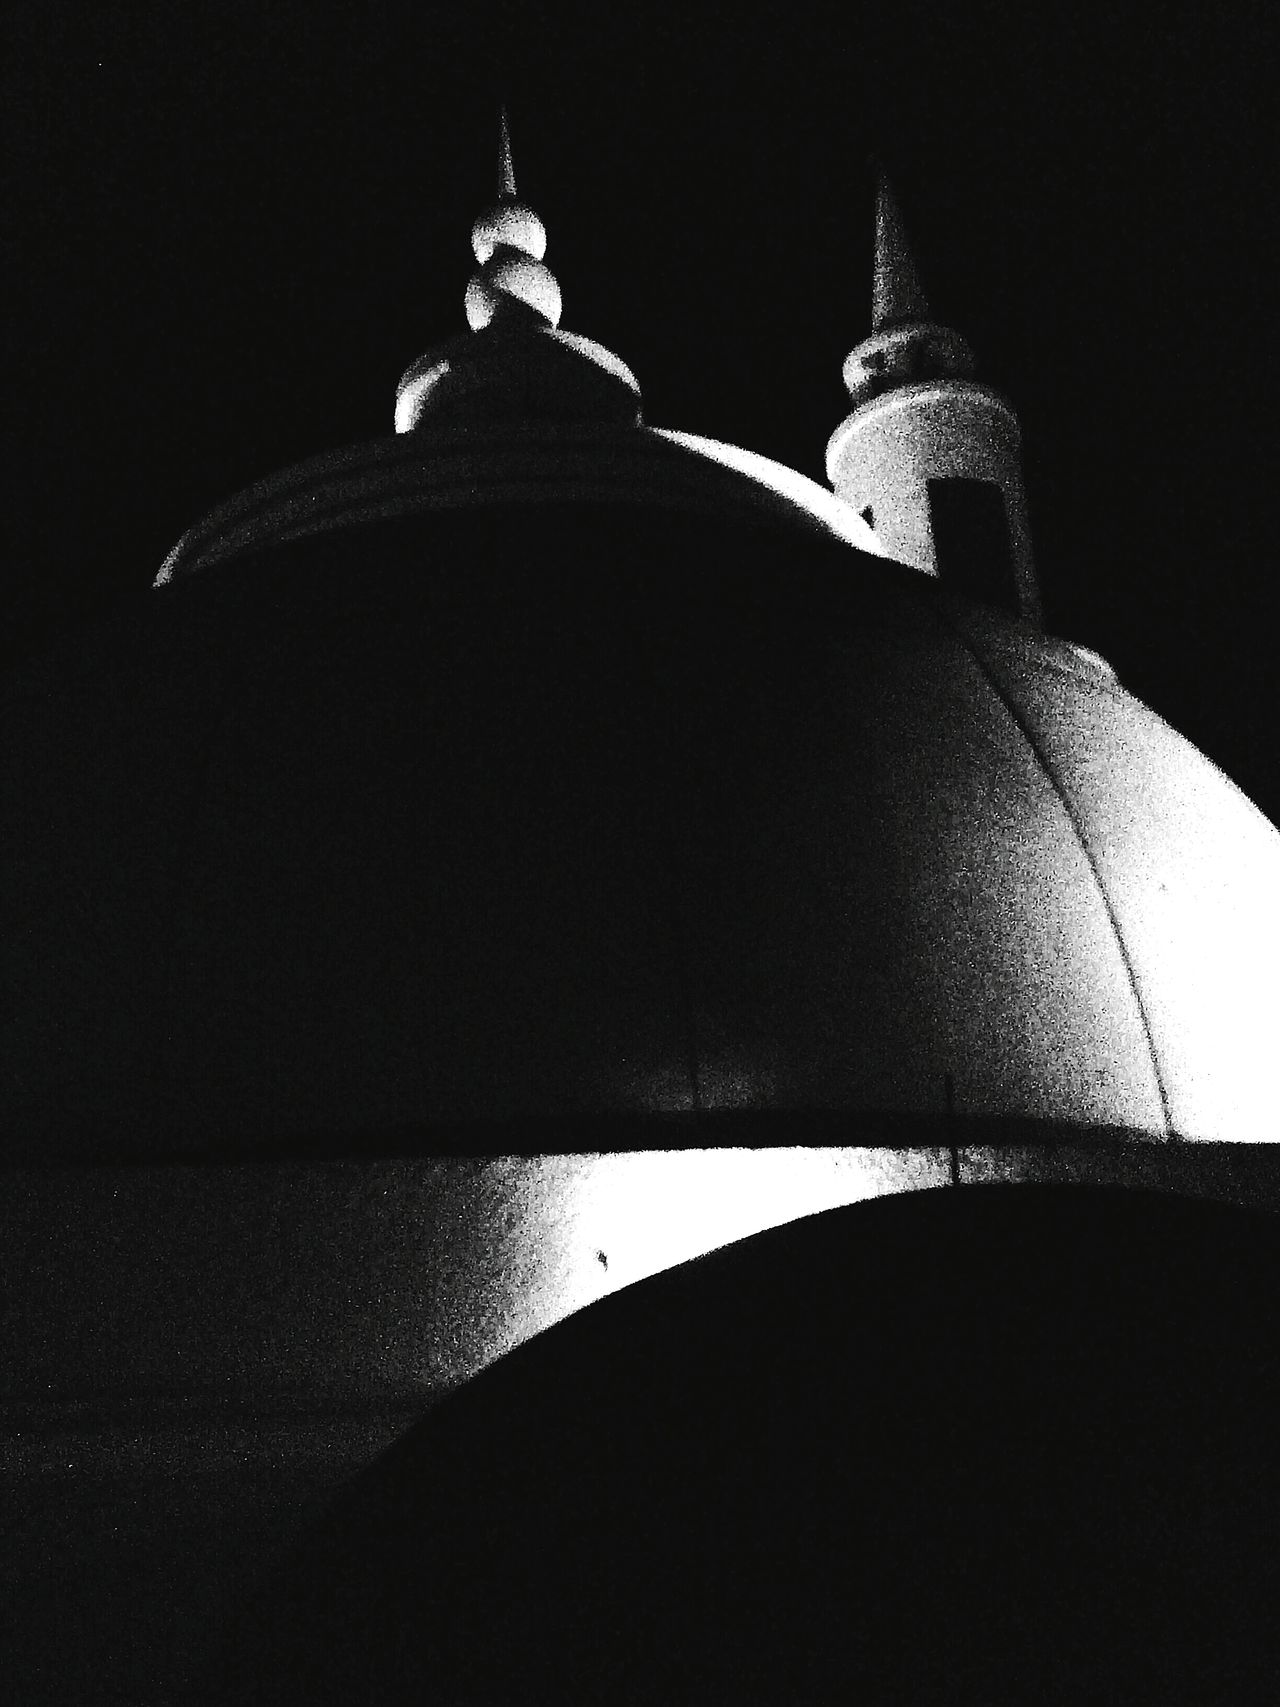 Dome of Masjid Al Fattah Jatinegara and its minaret's peak (background) Bnw Lowlight Rooftop View  Place Of Worship Religion spirituality Fine Art Photography